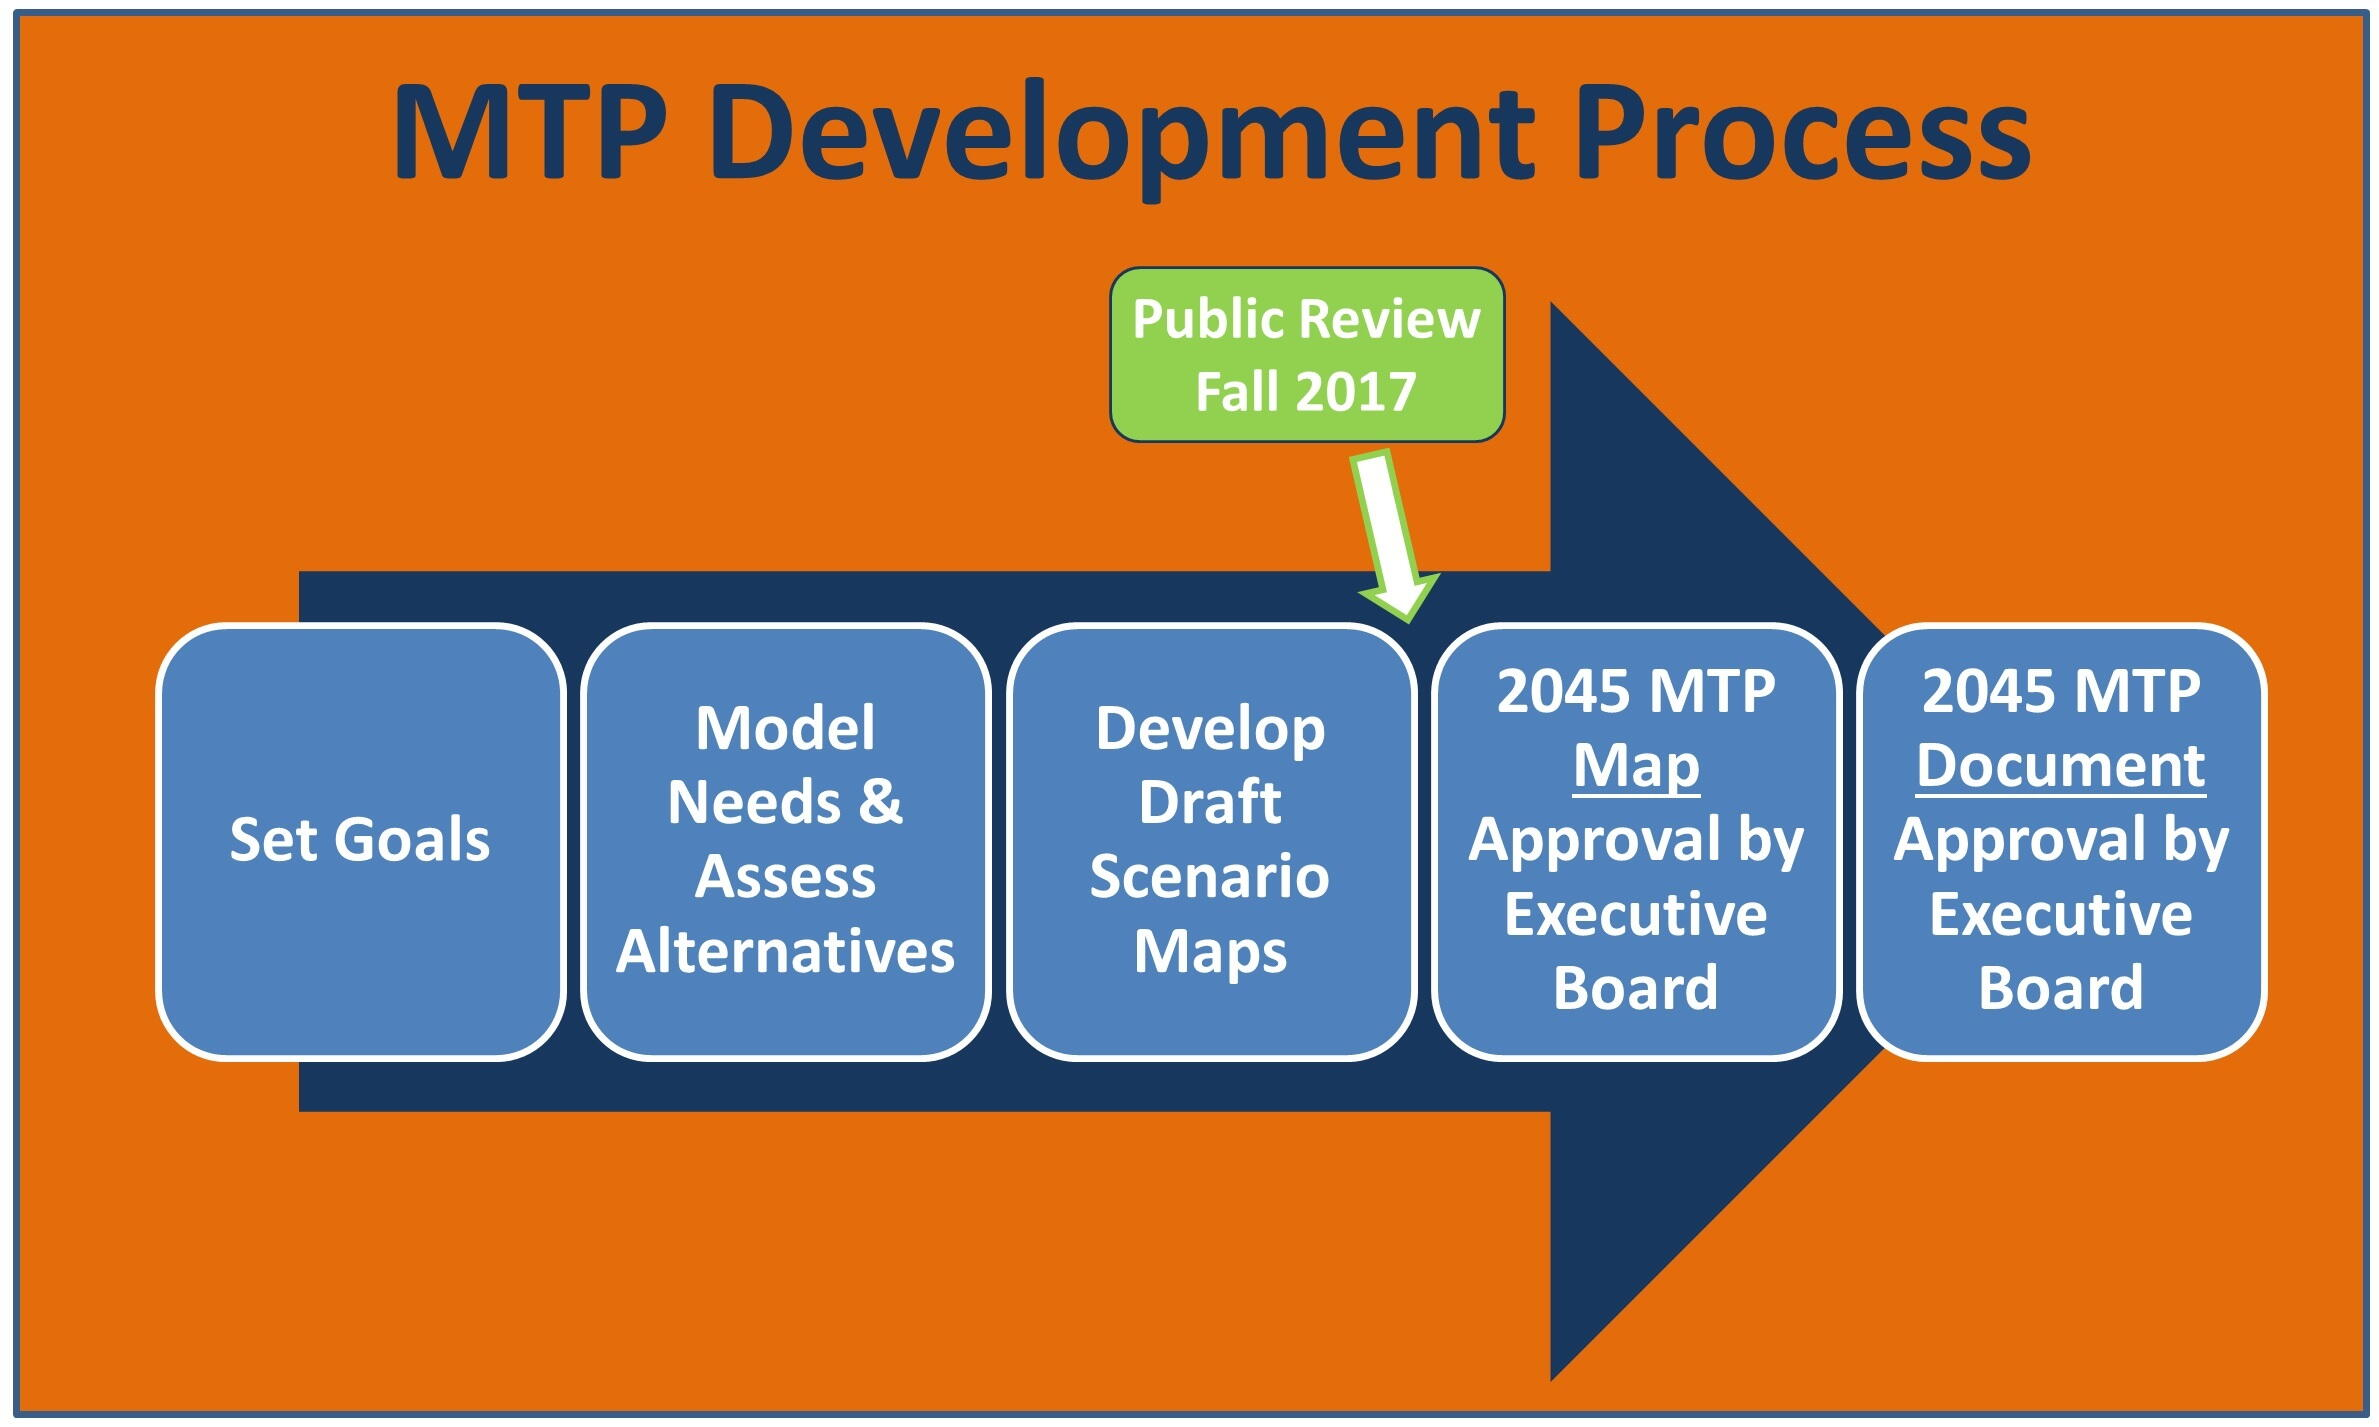 Flow Chart of MTP Development Process